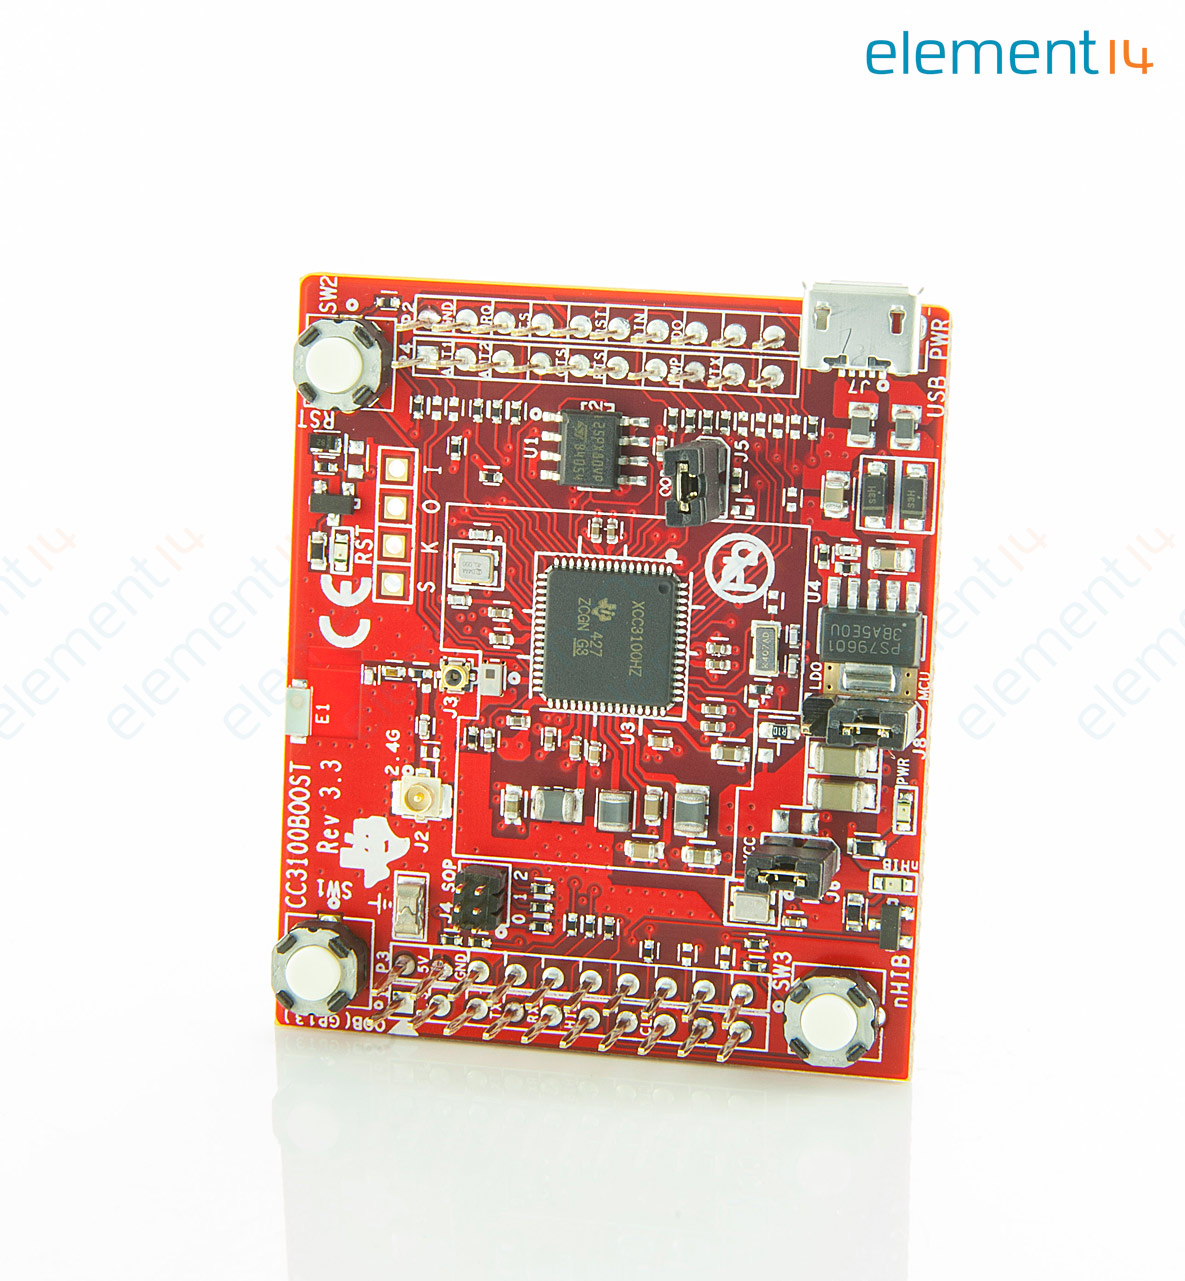 Cc3100boost Texas Instruments Evaluation Module Wifi Network Electronics Learning Circuits Webonly Products Technology Richmedia 391kb En